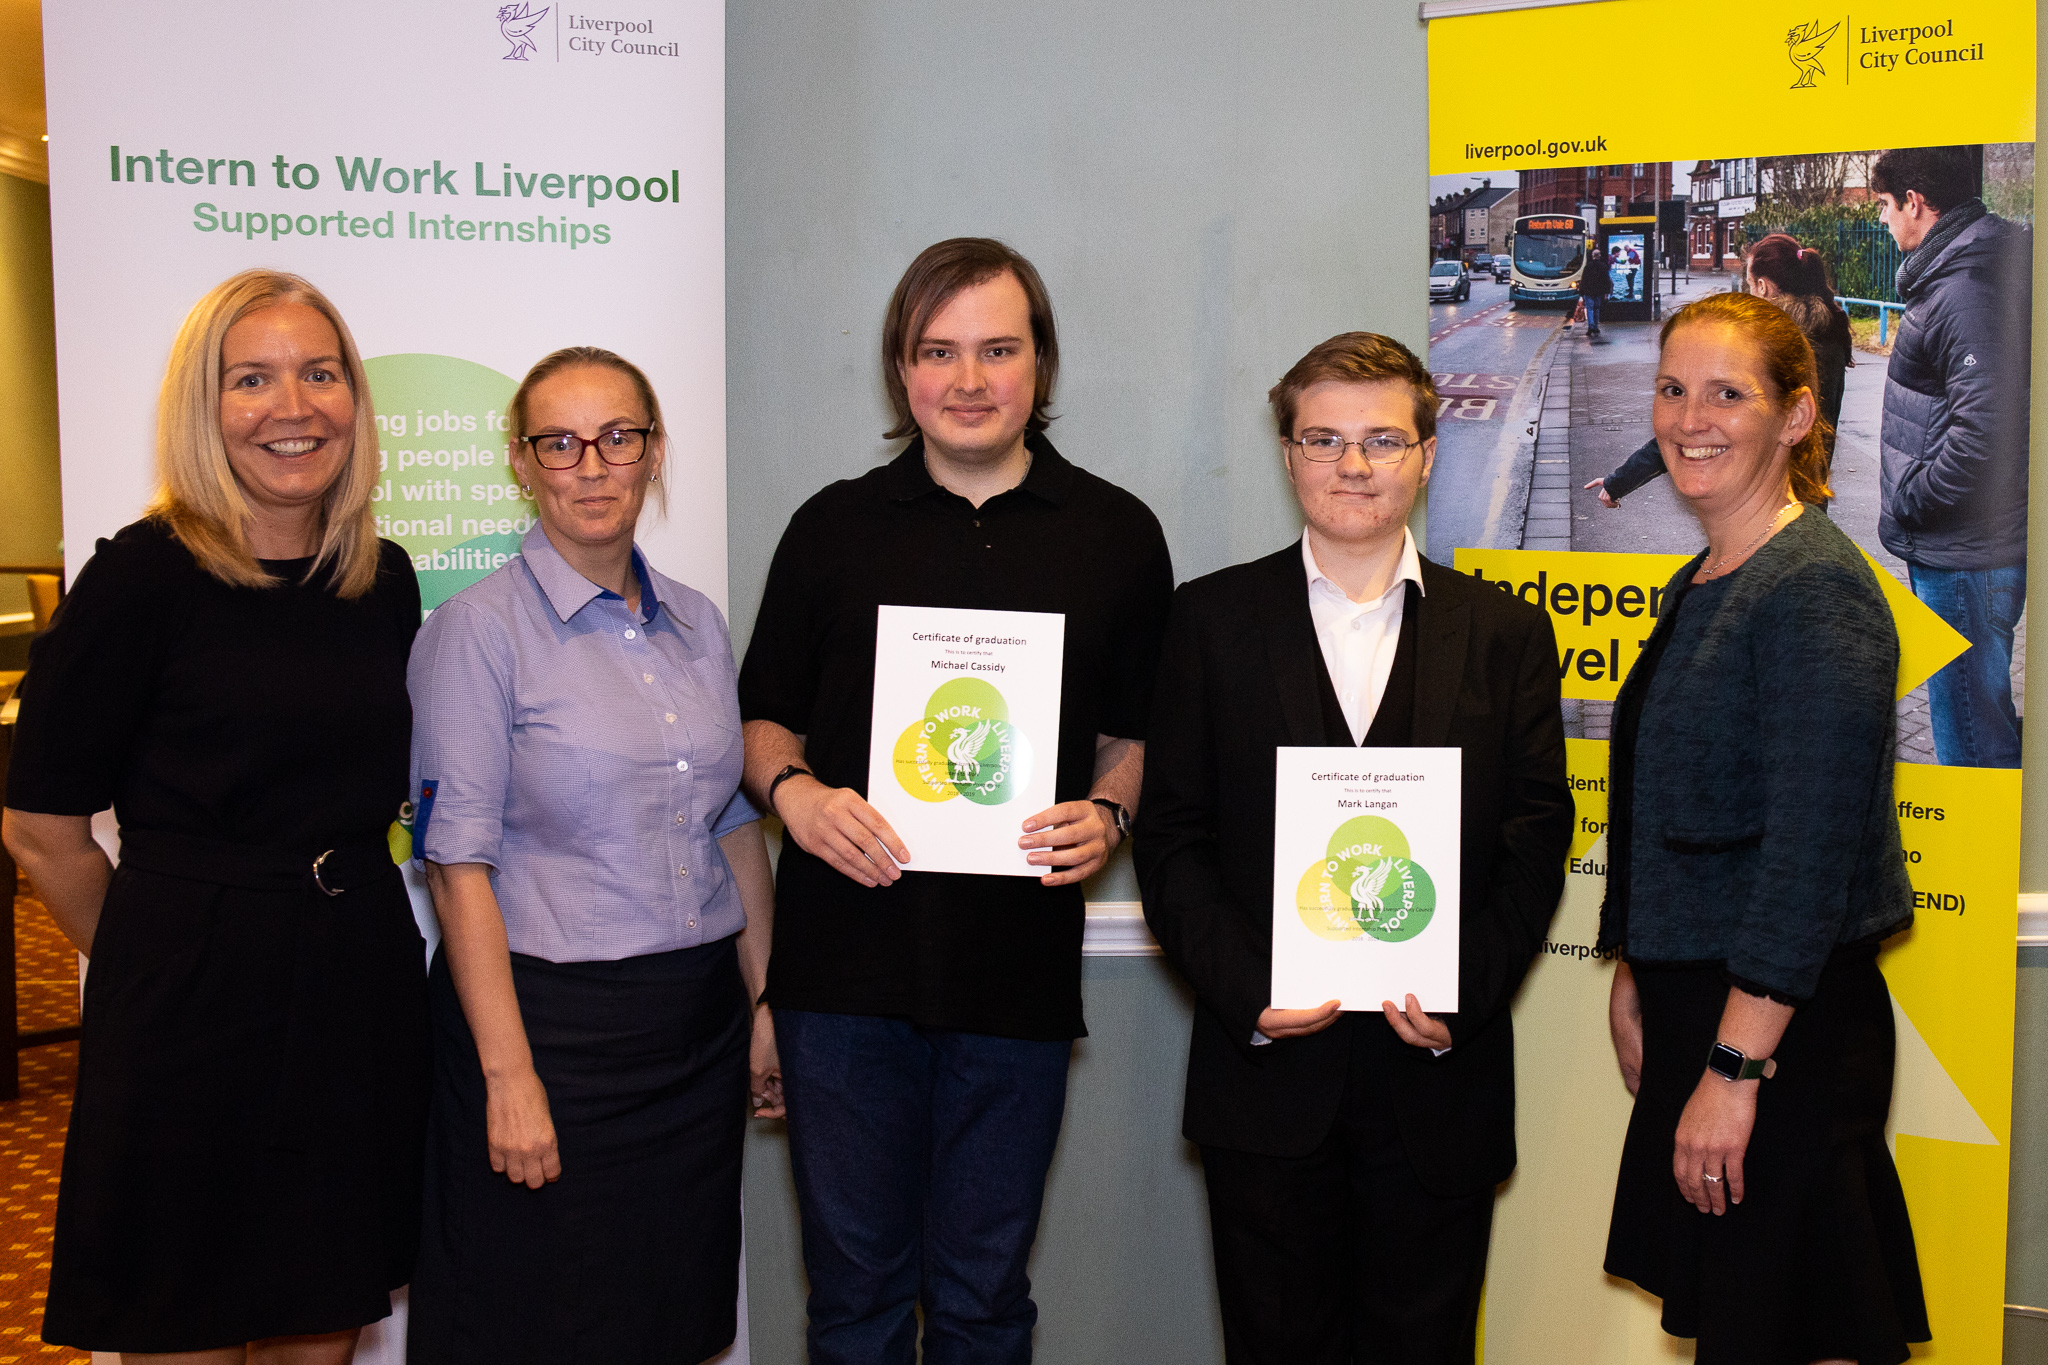 Michael and Mark, supported interns from Bankview High School based at Holiday Inn Express Hotel with their graduation certificates. Accompanied by their Head Teacher, Juliette Gelling, Helen Roberts and Mary Dunleavy from Holiday Inn Express Hotel.